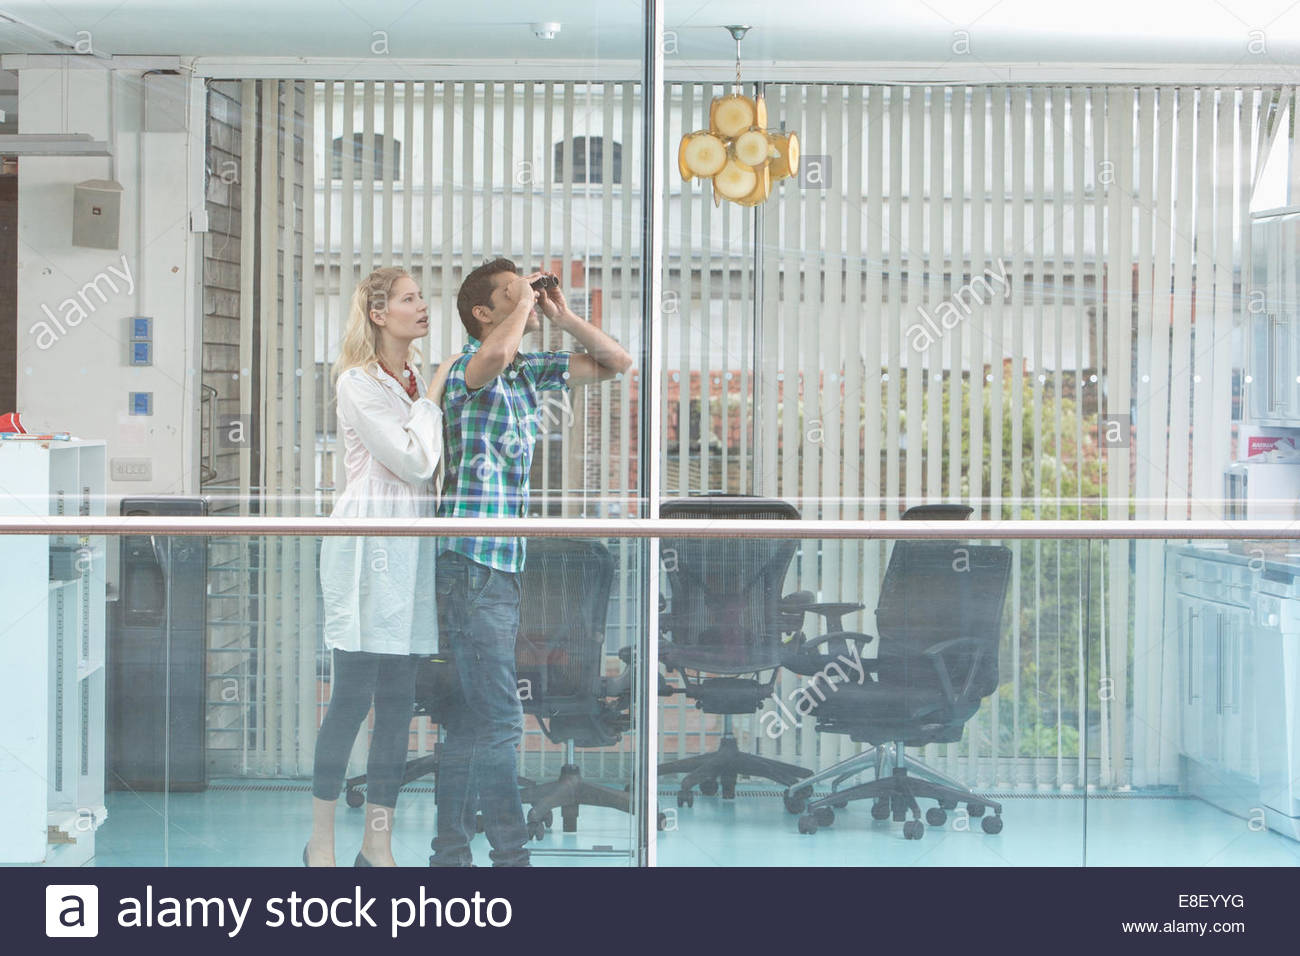 Smiling man and woman looking out window - Stock Image